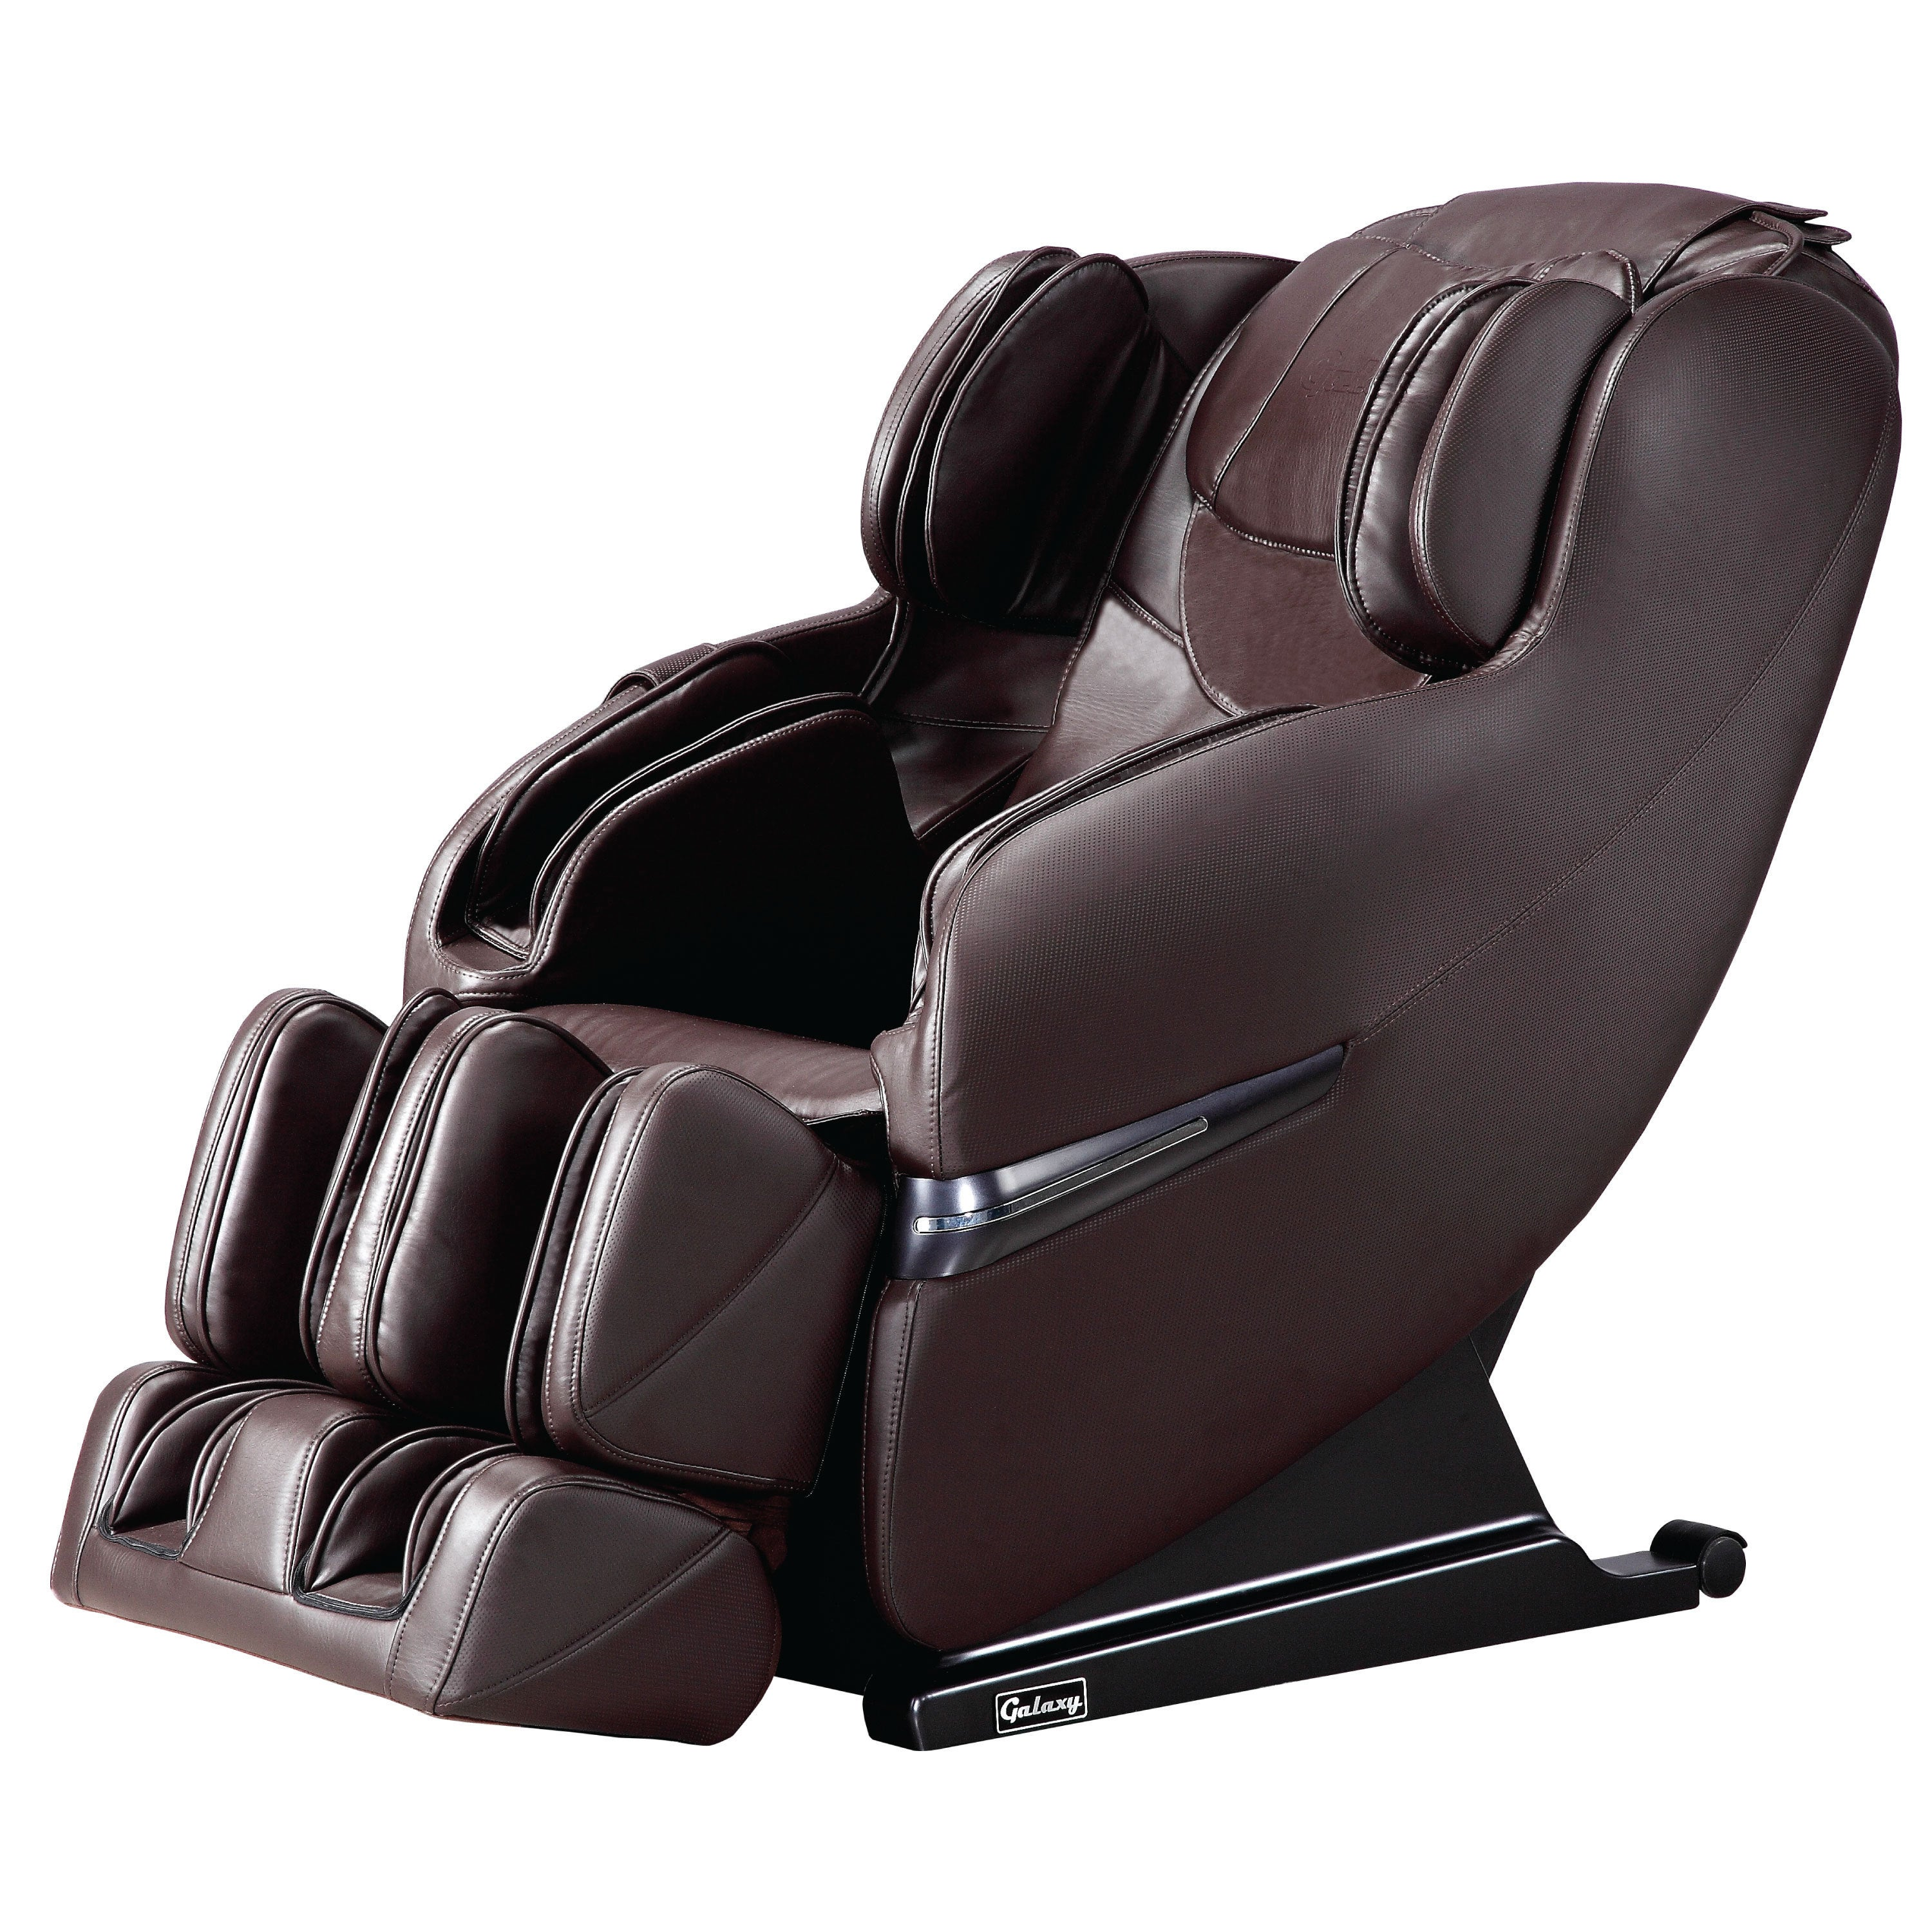 tag chair in with massage quiquinou travel dutchy cost travels princess kl